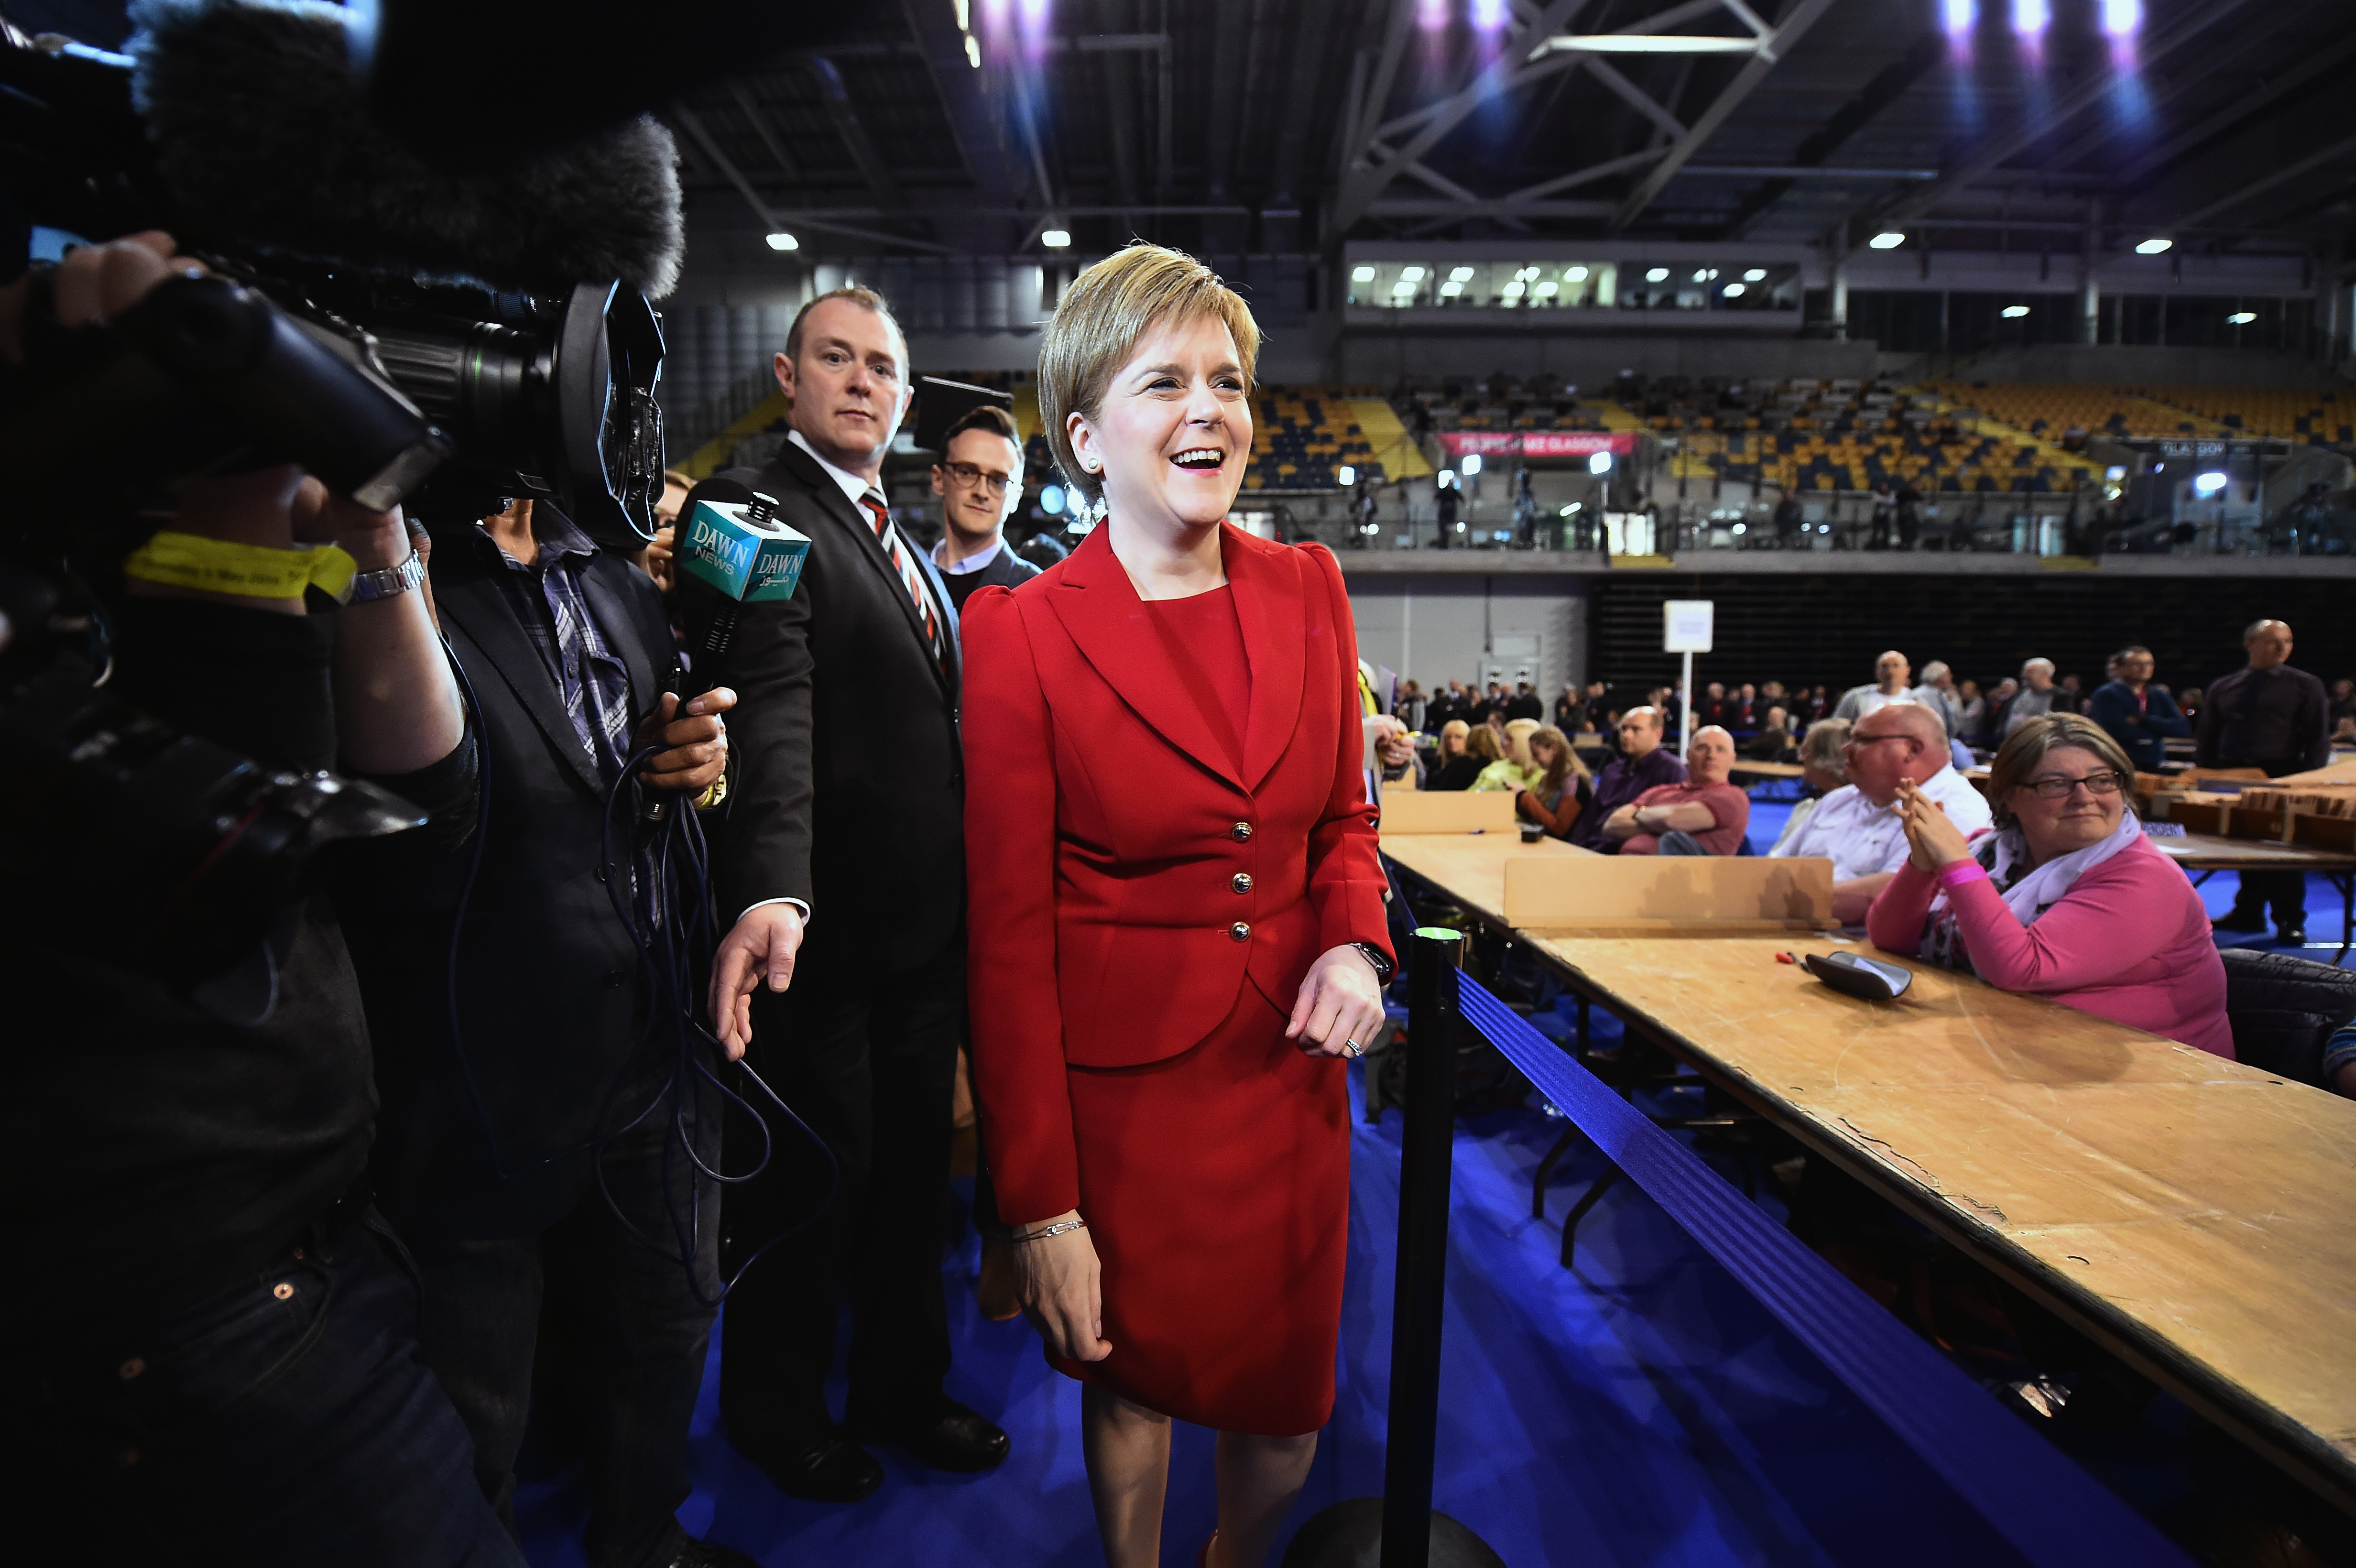 SNP leader Nicola Sturgeon arrives at the count for the Scottish Parliament elections at the Emirates Arena on May 6, 2016 in Glasgow,Scotland.